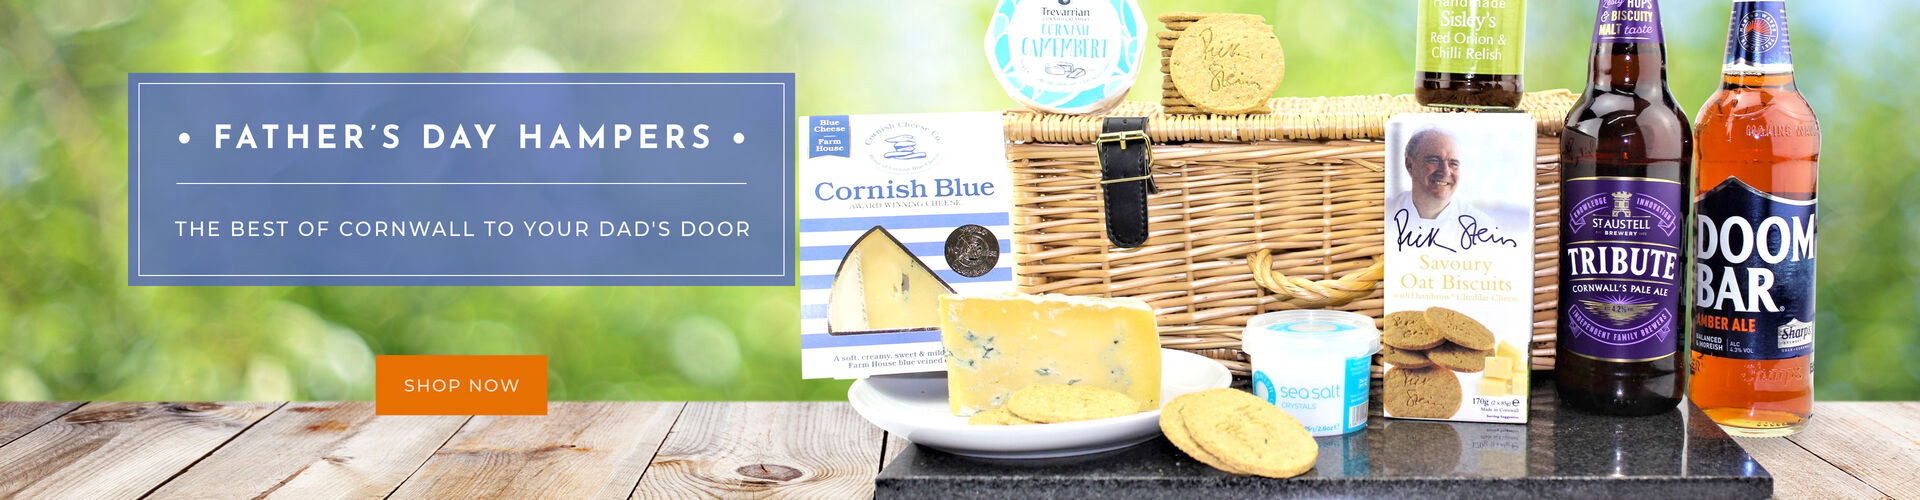 Father's Day Hampers